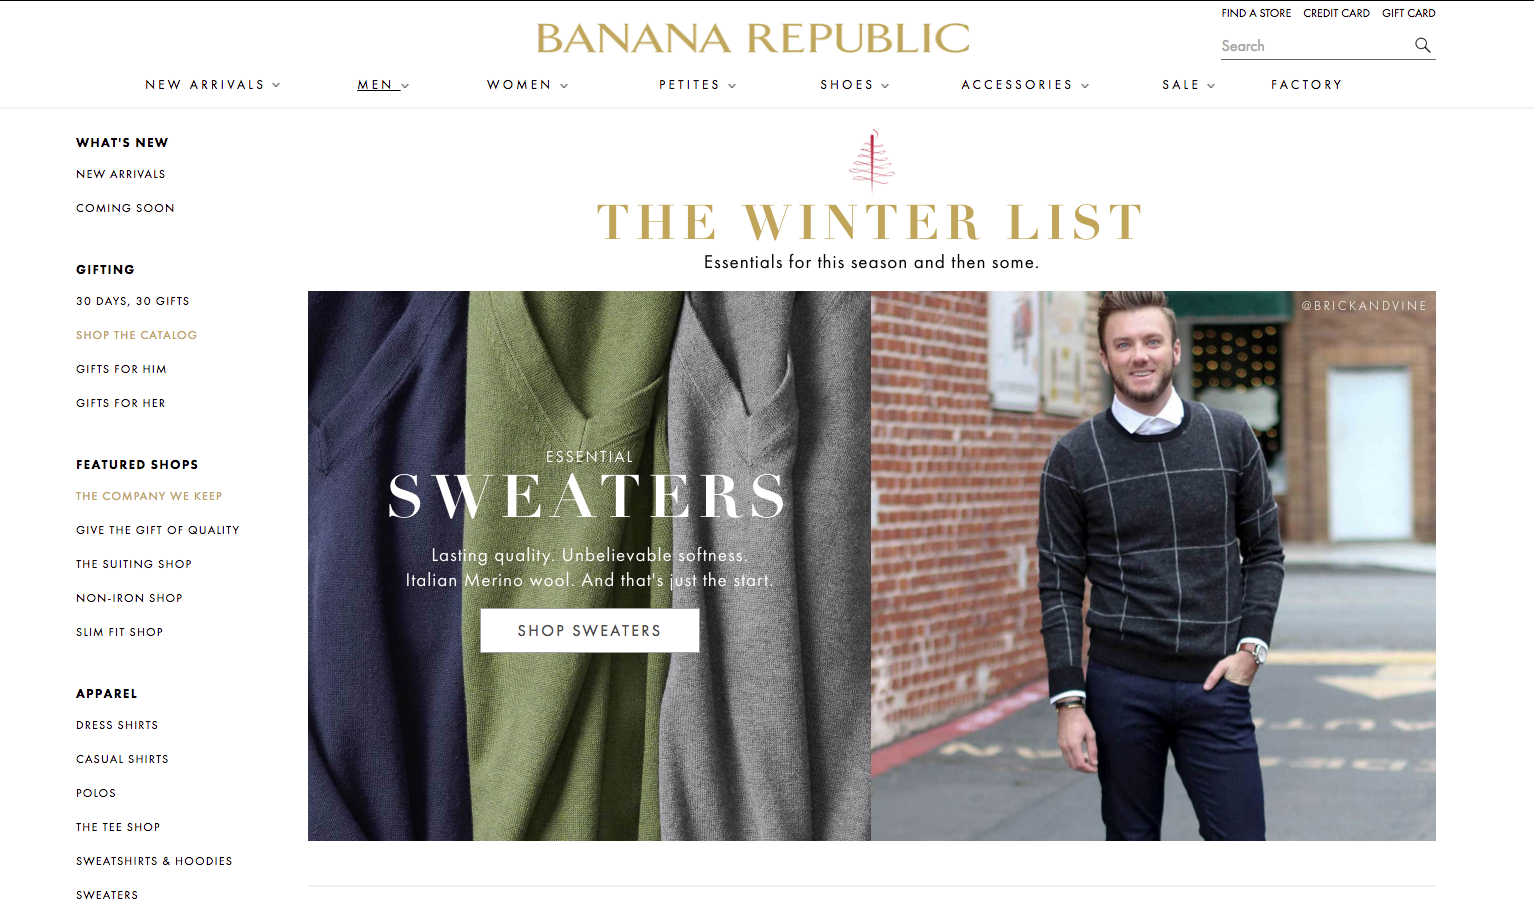 Brick and Vine on Banana Republic